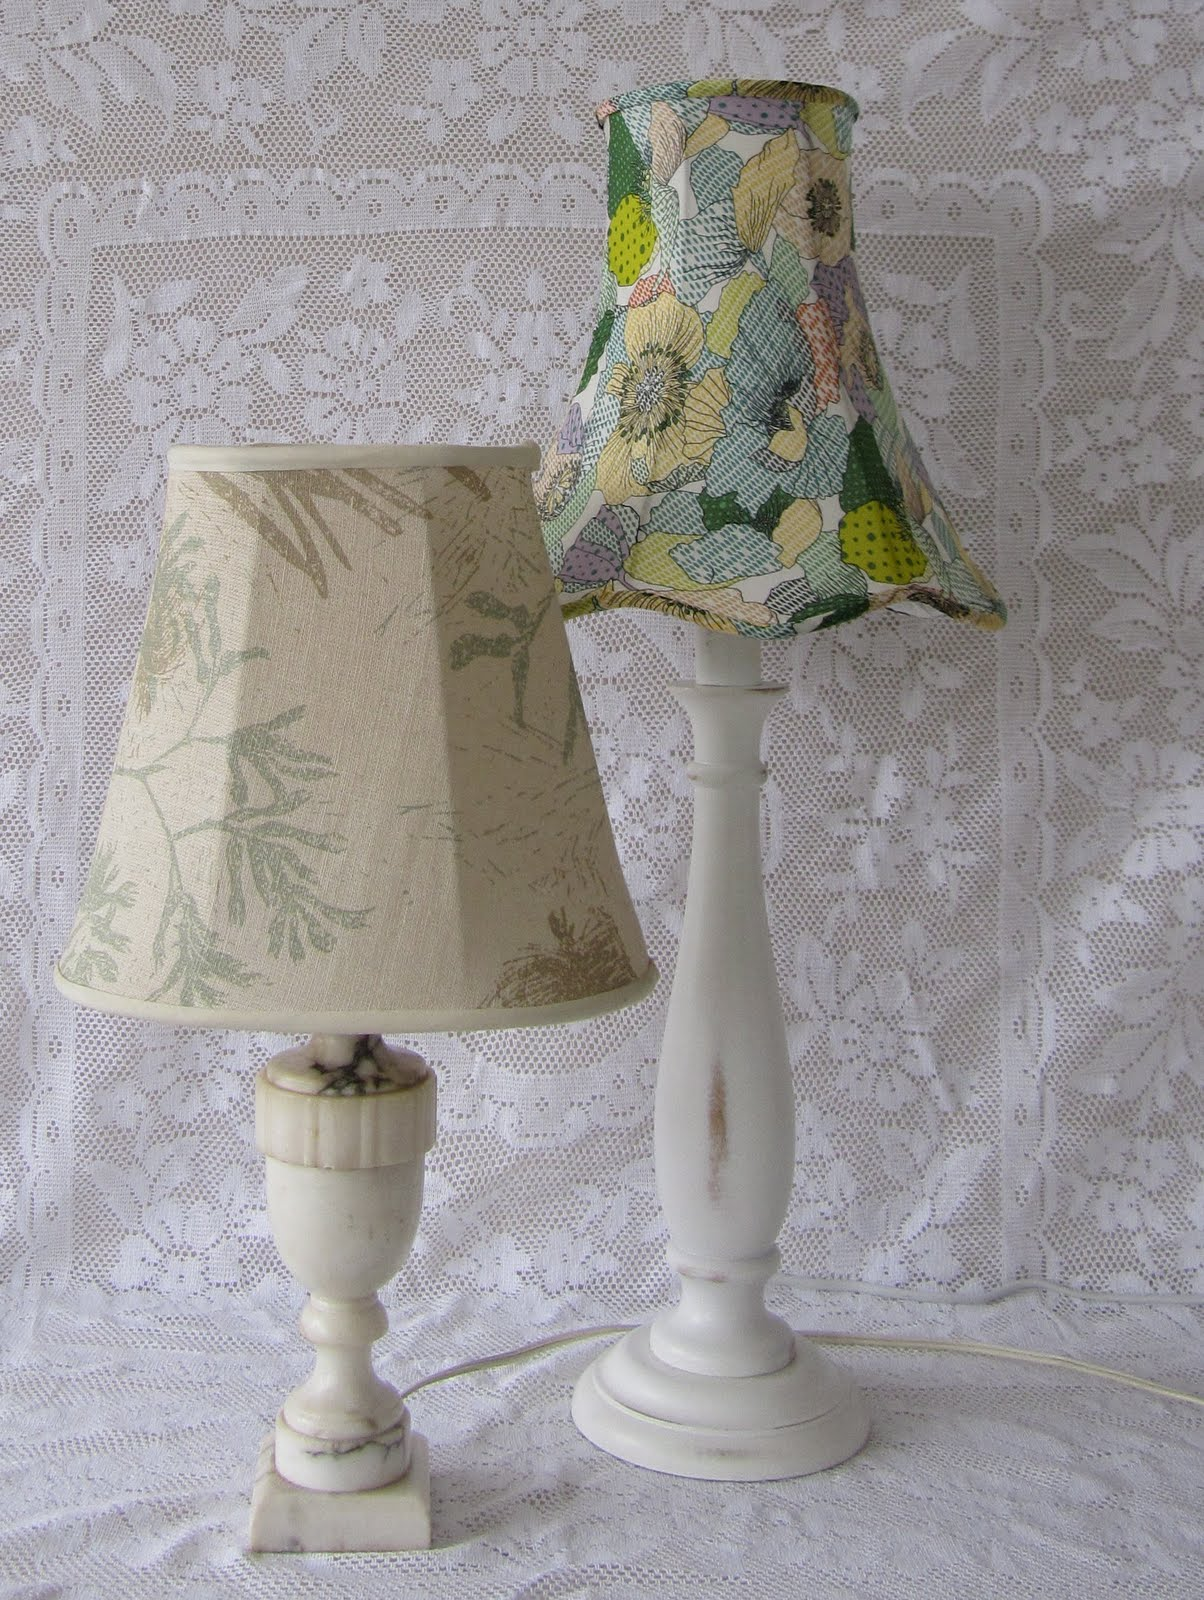 Small things simple pleasures how to recover a lampshade tutorial the other one i made a while ago but have included to give you an indication of different shapes and trims greentooth Gallery